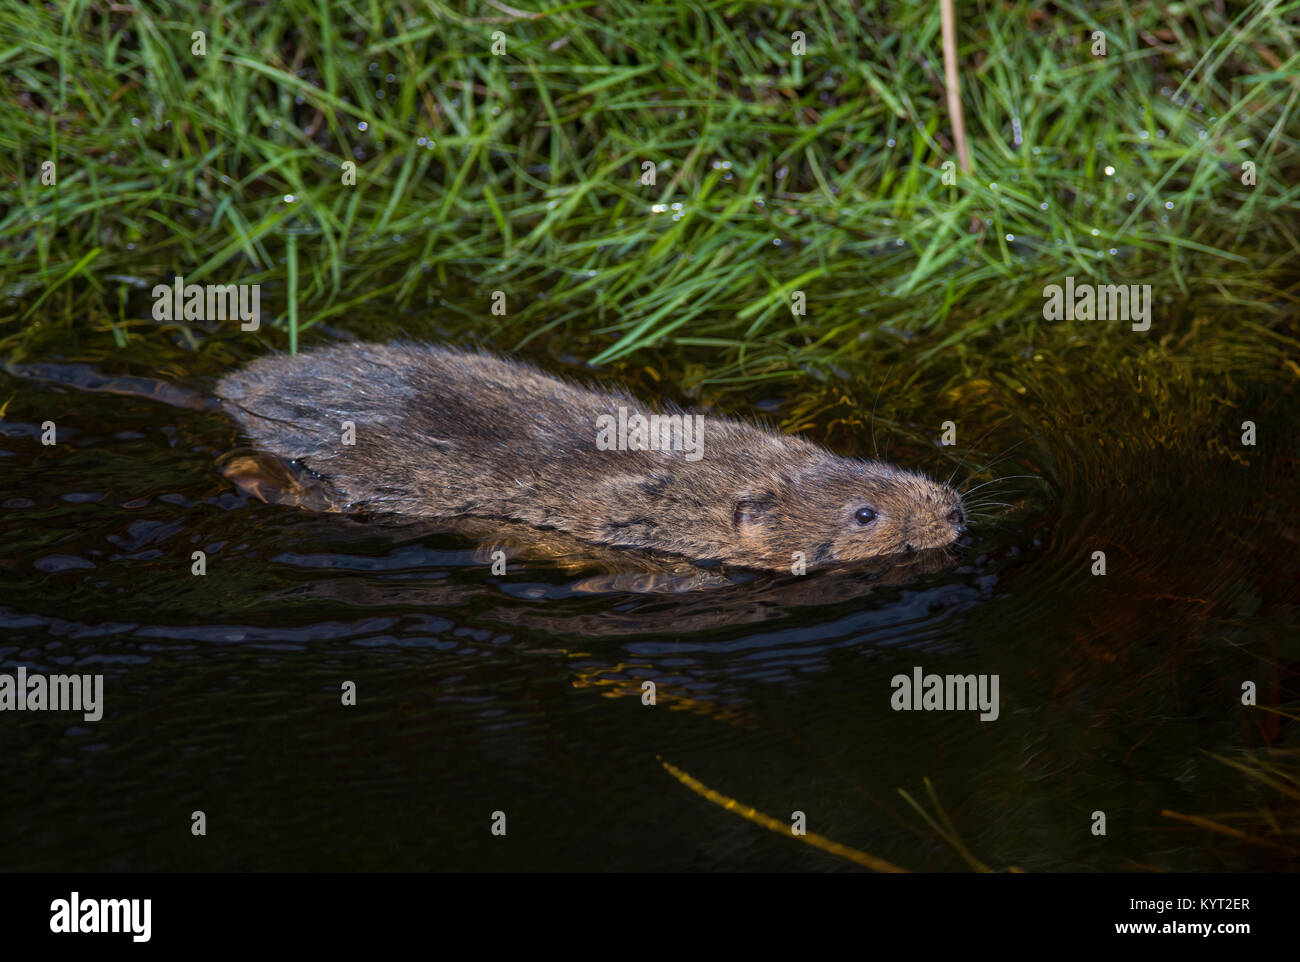 European Water Vole Arvicola amphibius swimming in a stream in the Pennines in Northern England UK. - Stock Image